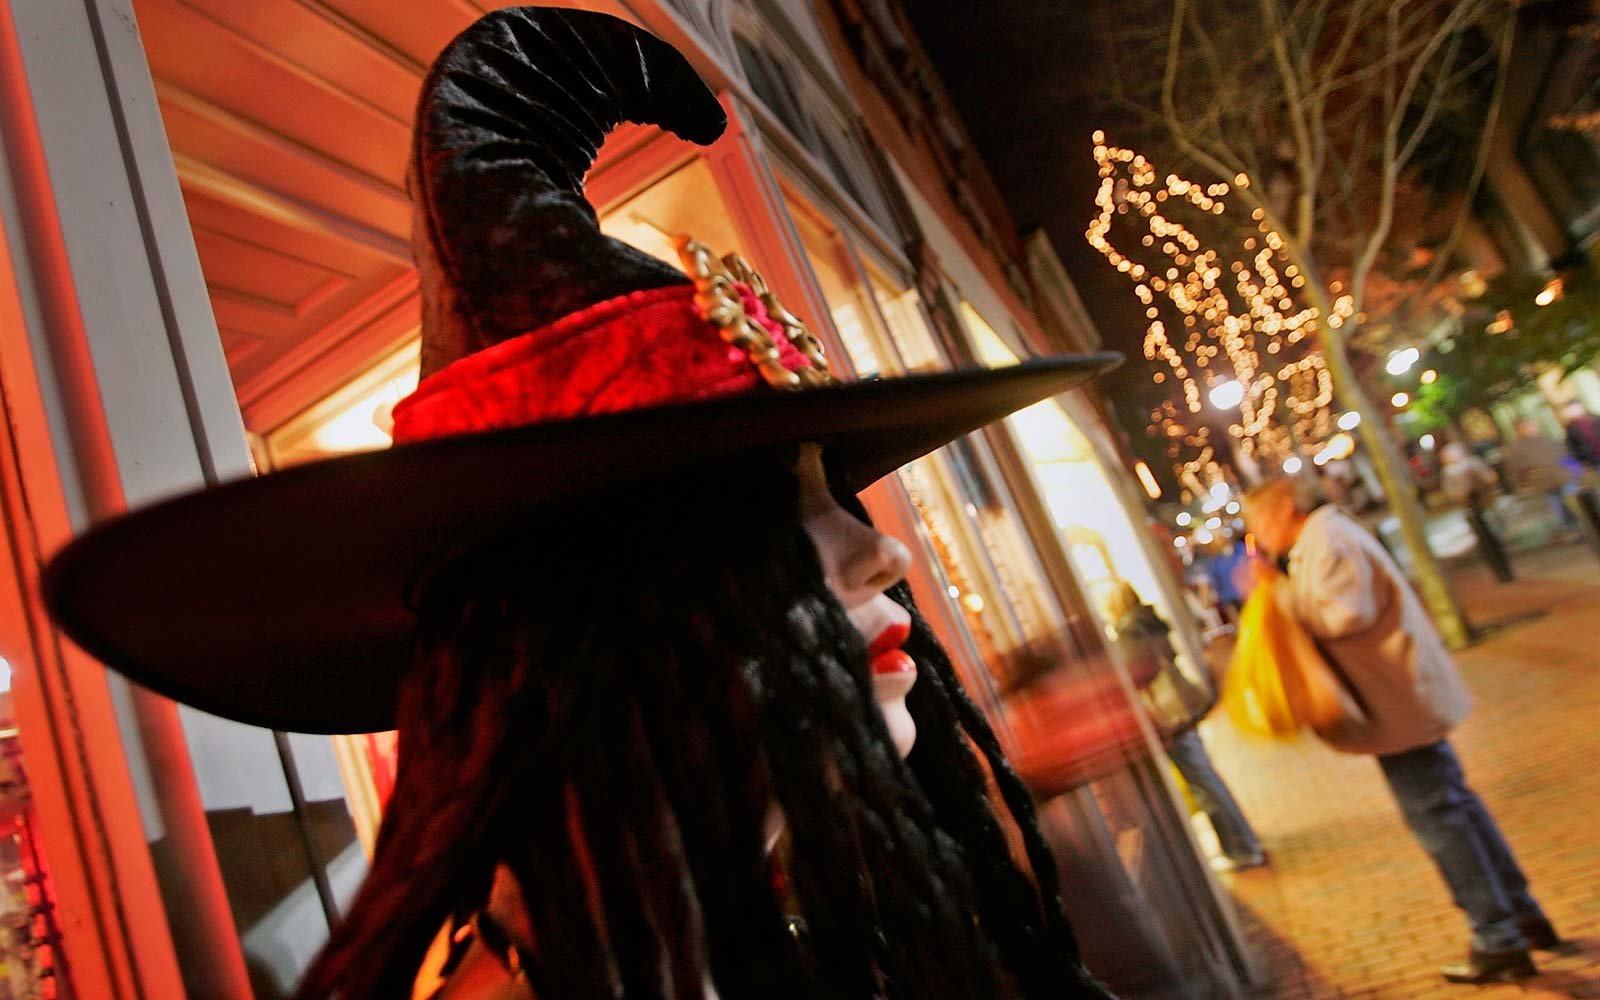 A Halloween costume witch Magic Tourism 1692 trials took place in Salem, Massachusetts. Thousands of tourists come to attend the large Halloween festival